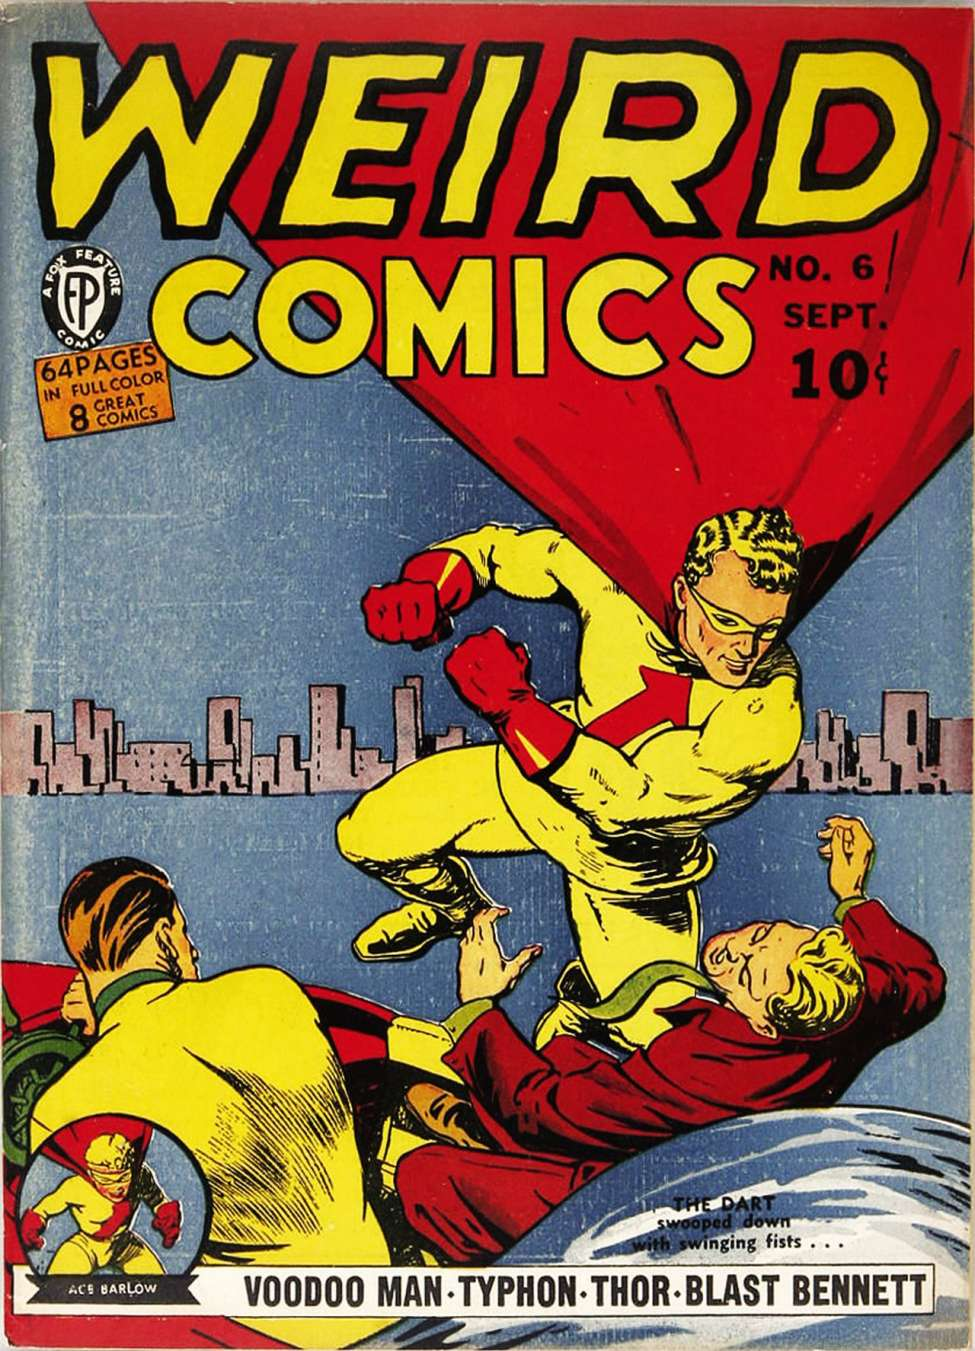 Comic Book Cover For Weird Comics #6 - Version 2